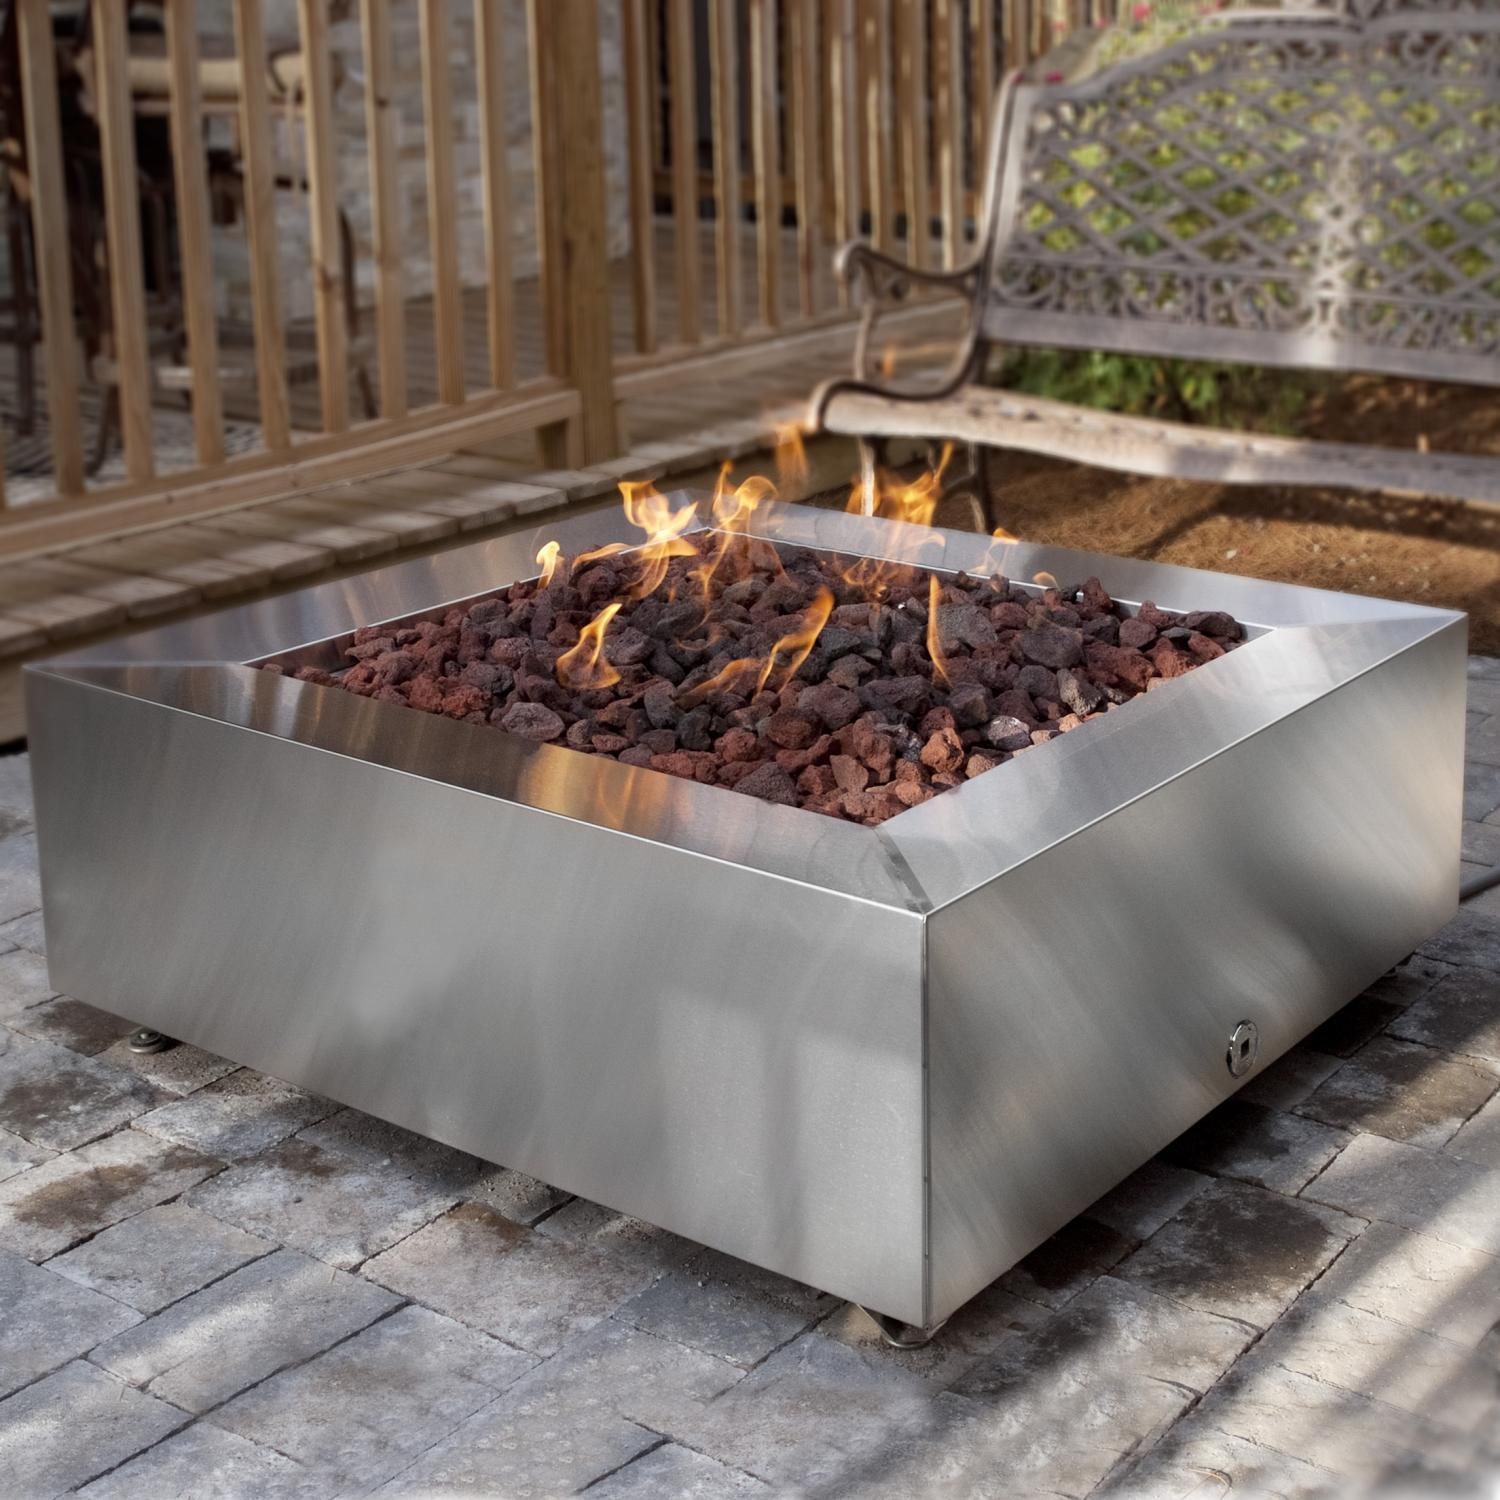 Fire Pit Pics: Fire Pits Image Gallery July 2018